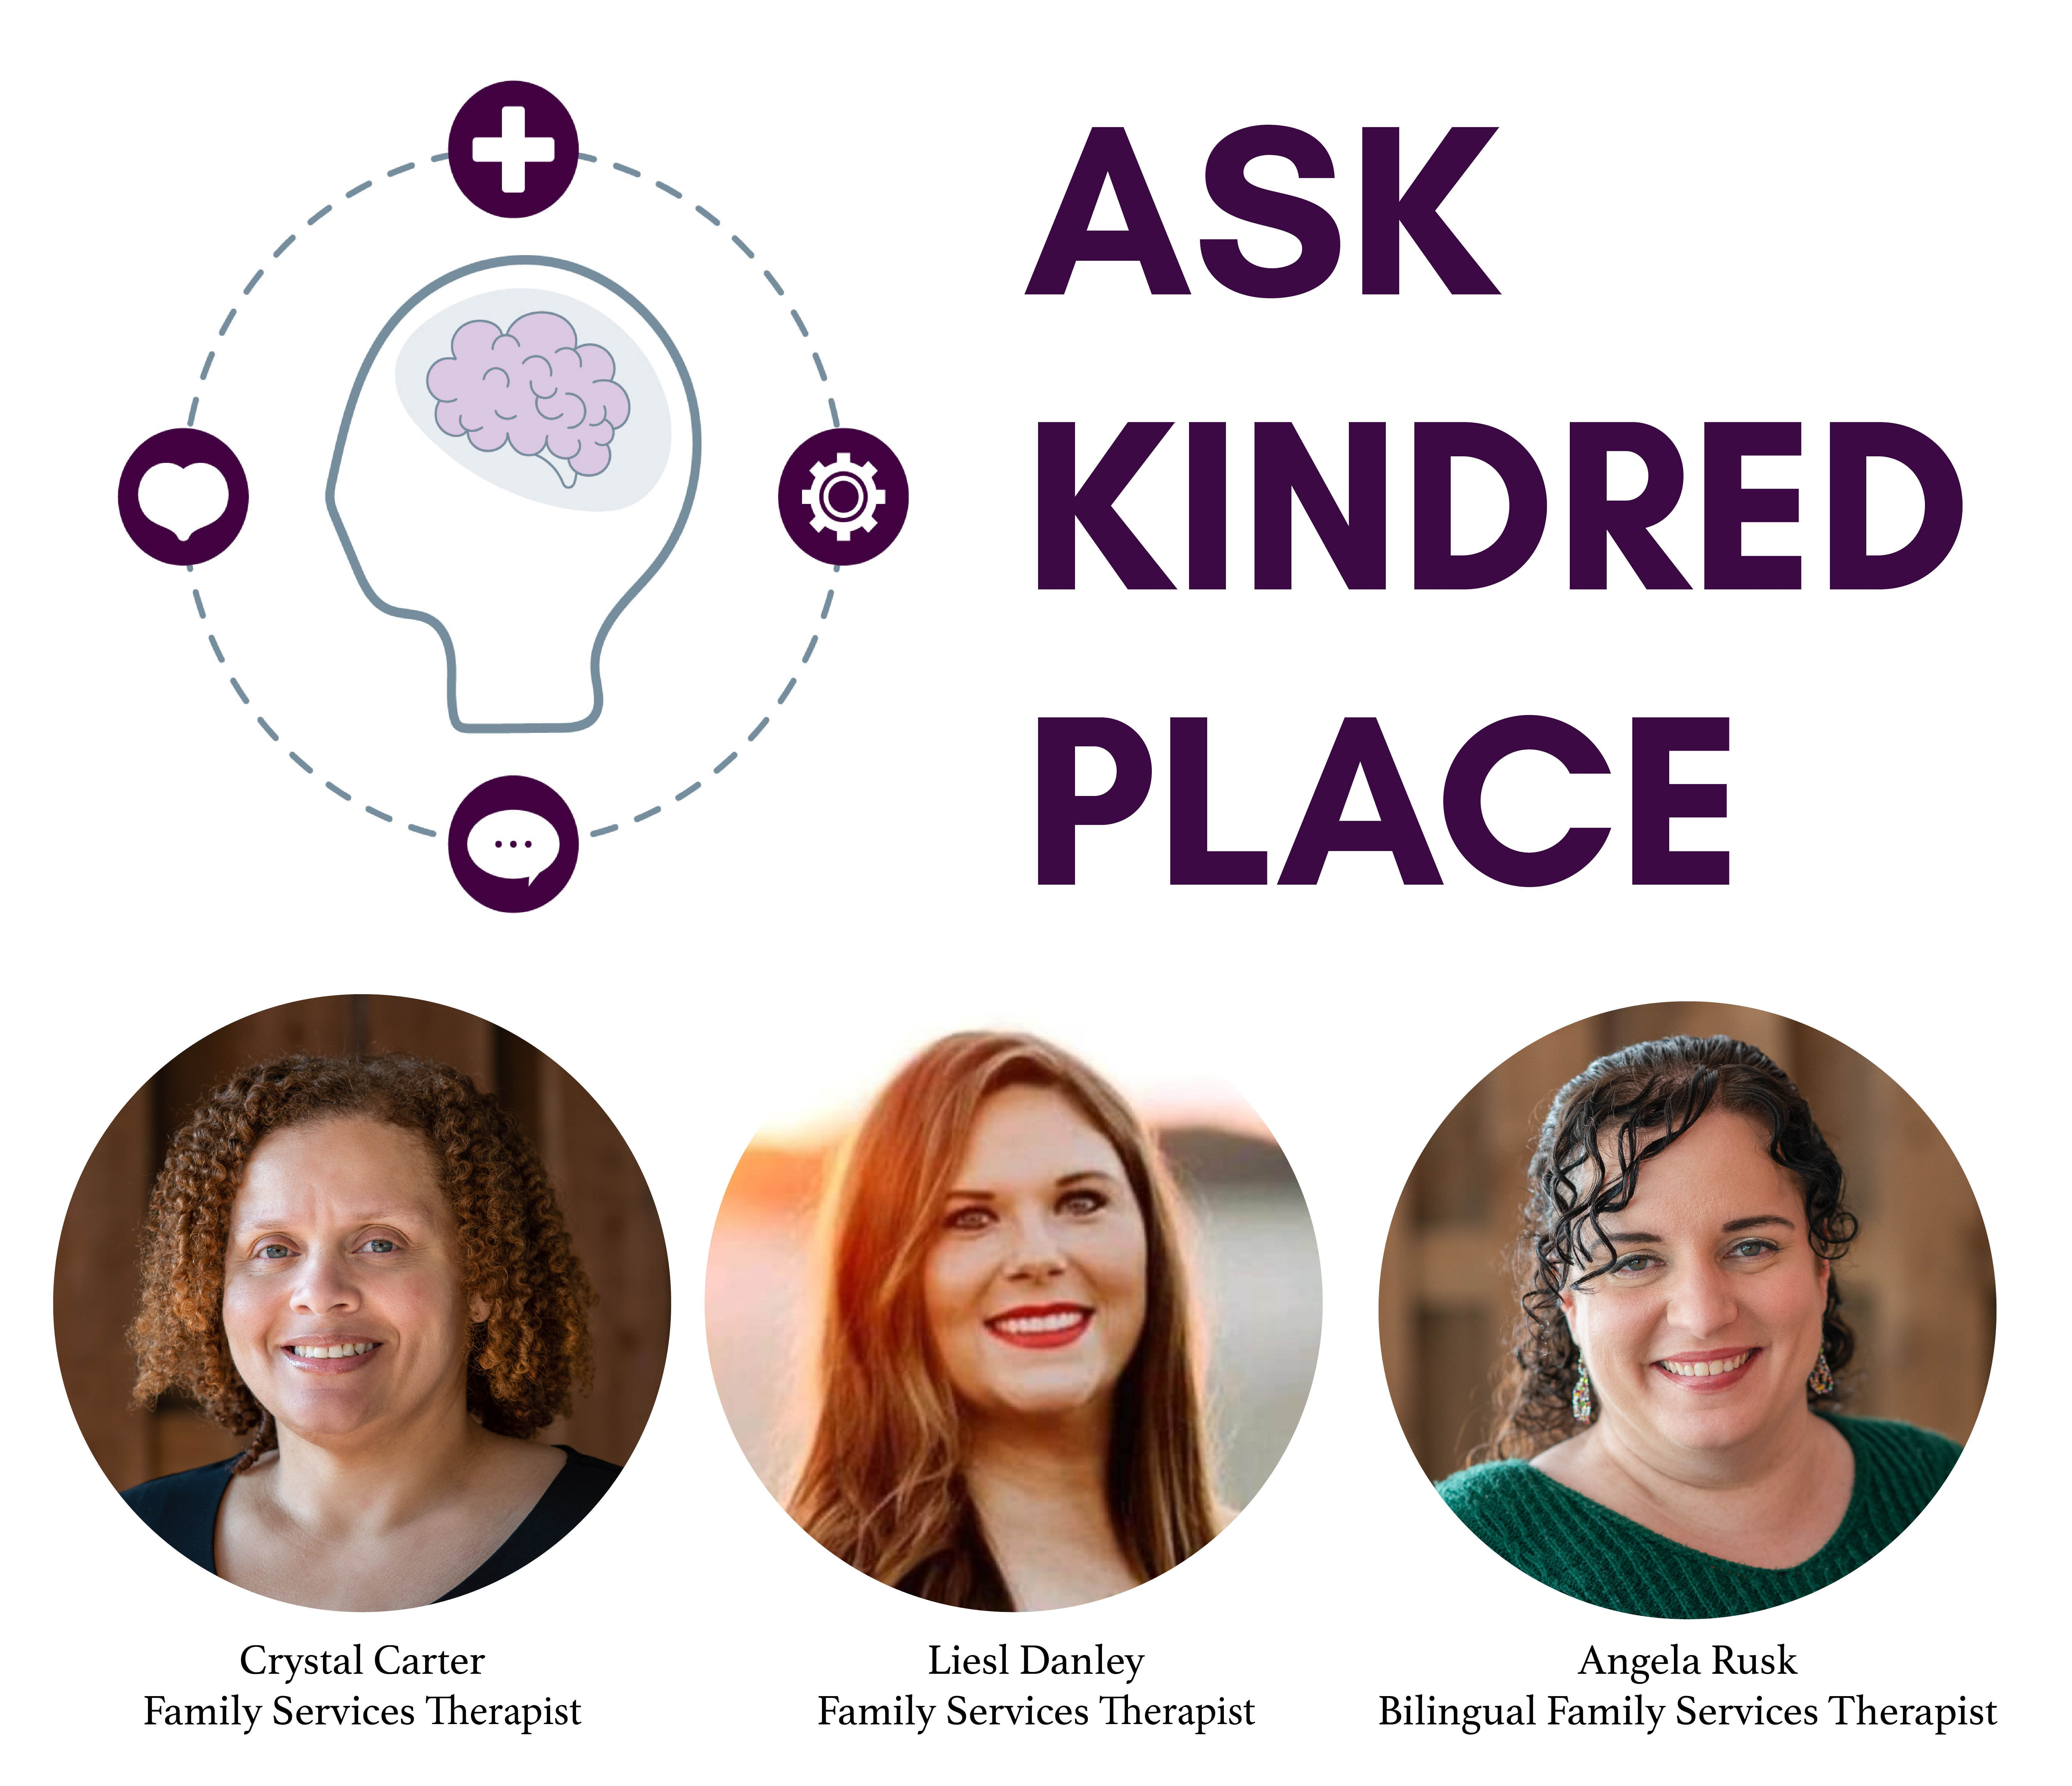 Ask Kindred Place - What advice do you have for couples who are navigating different approaches when it comes to parenting?